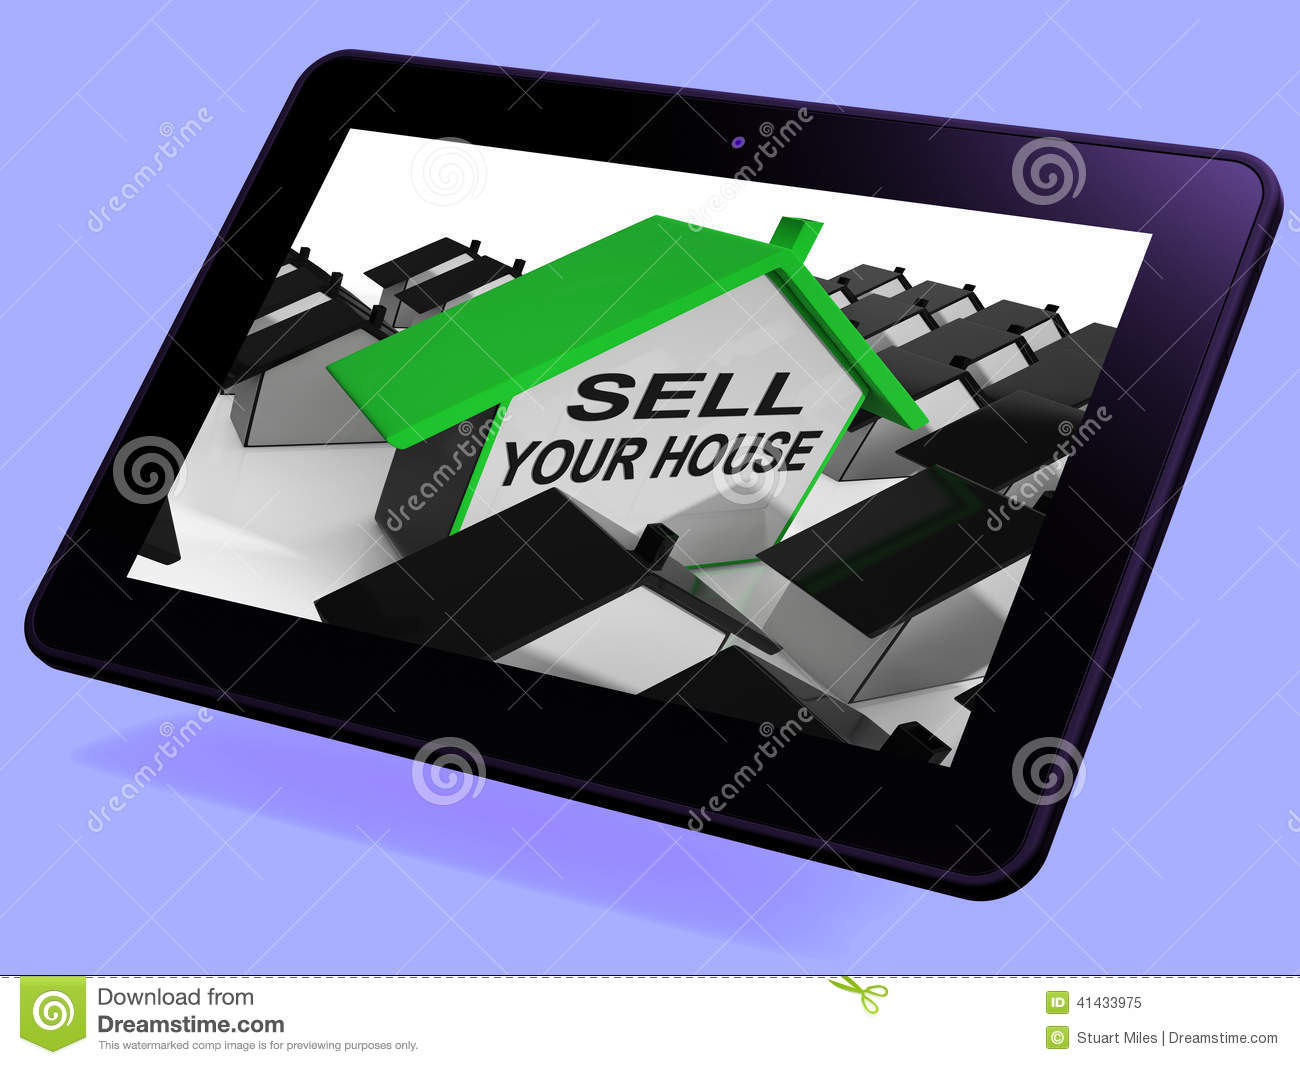 Sell Your House Home Tablet Means Marketing Property